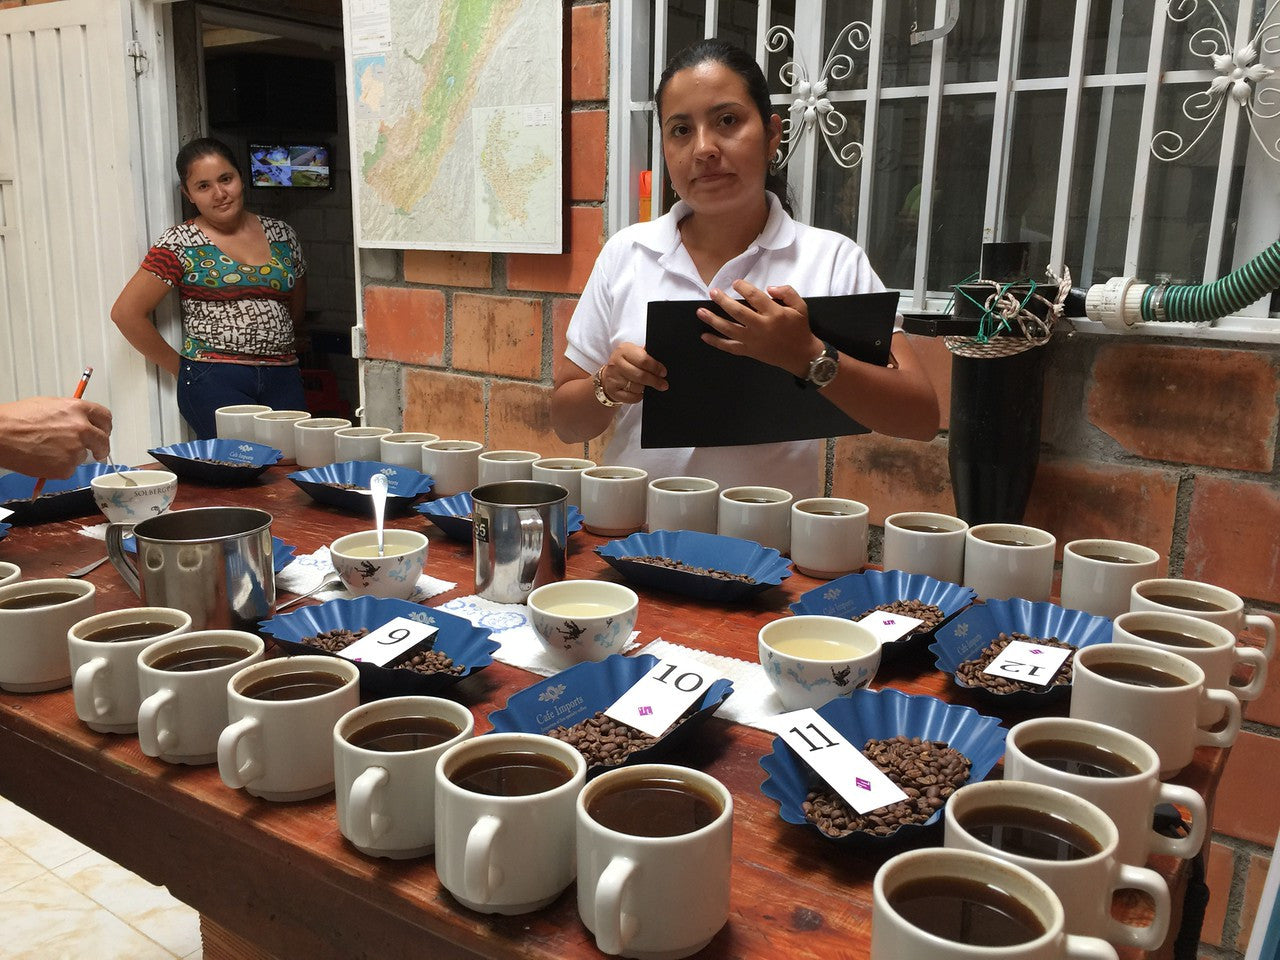 Ongoing cupping with Nordic Approach team. See! mugs are totally fine! Multiple cups of each lots is important as it can shows how consistent a lot actually is